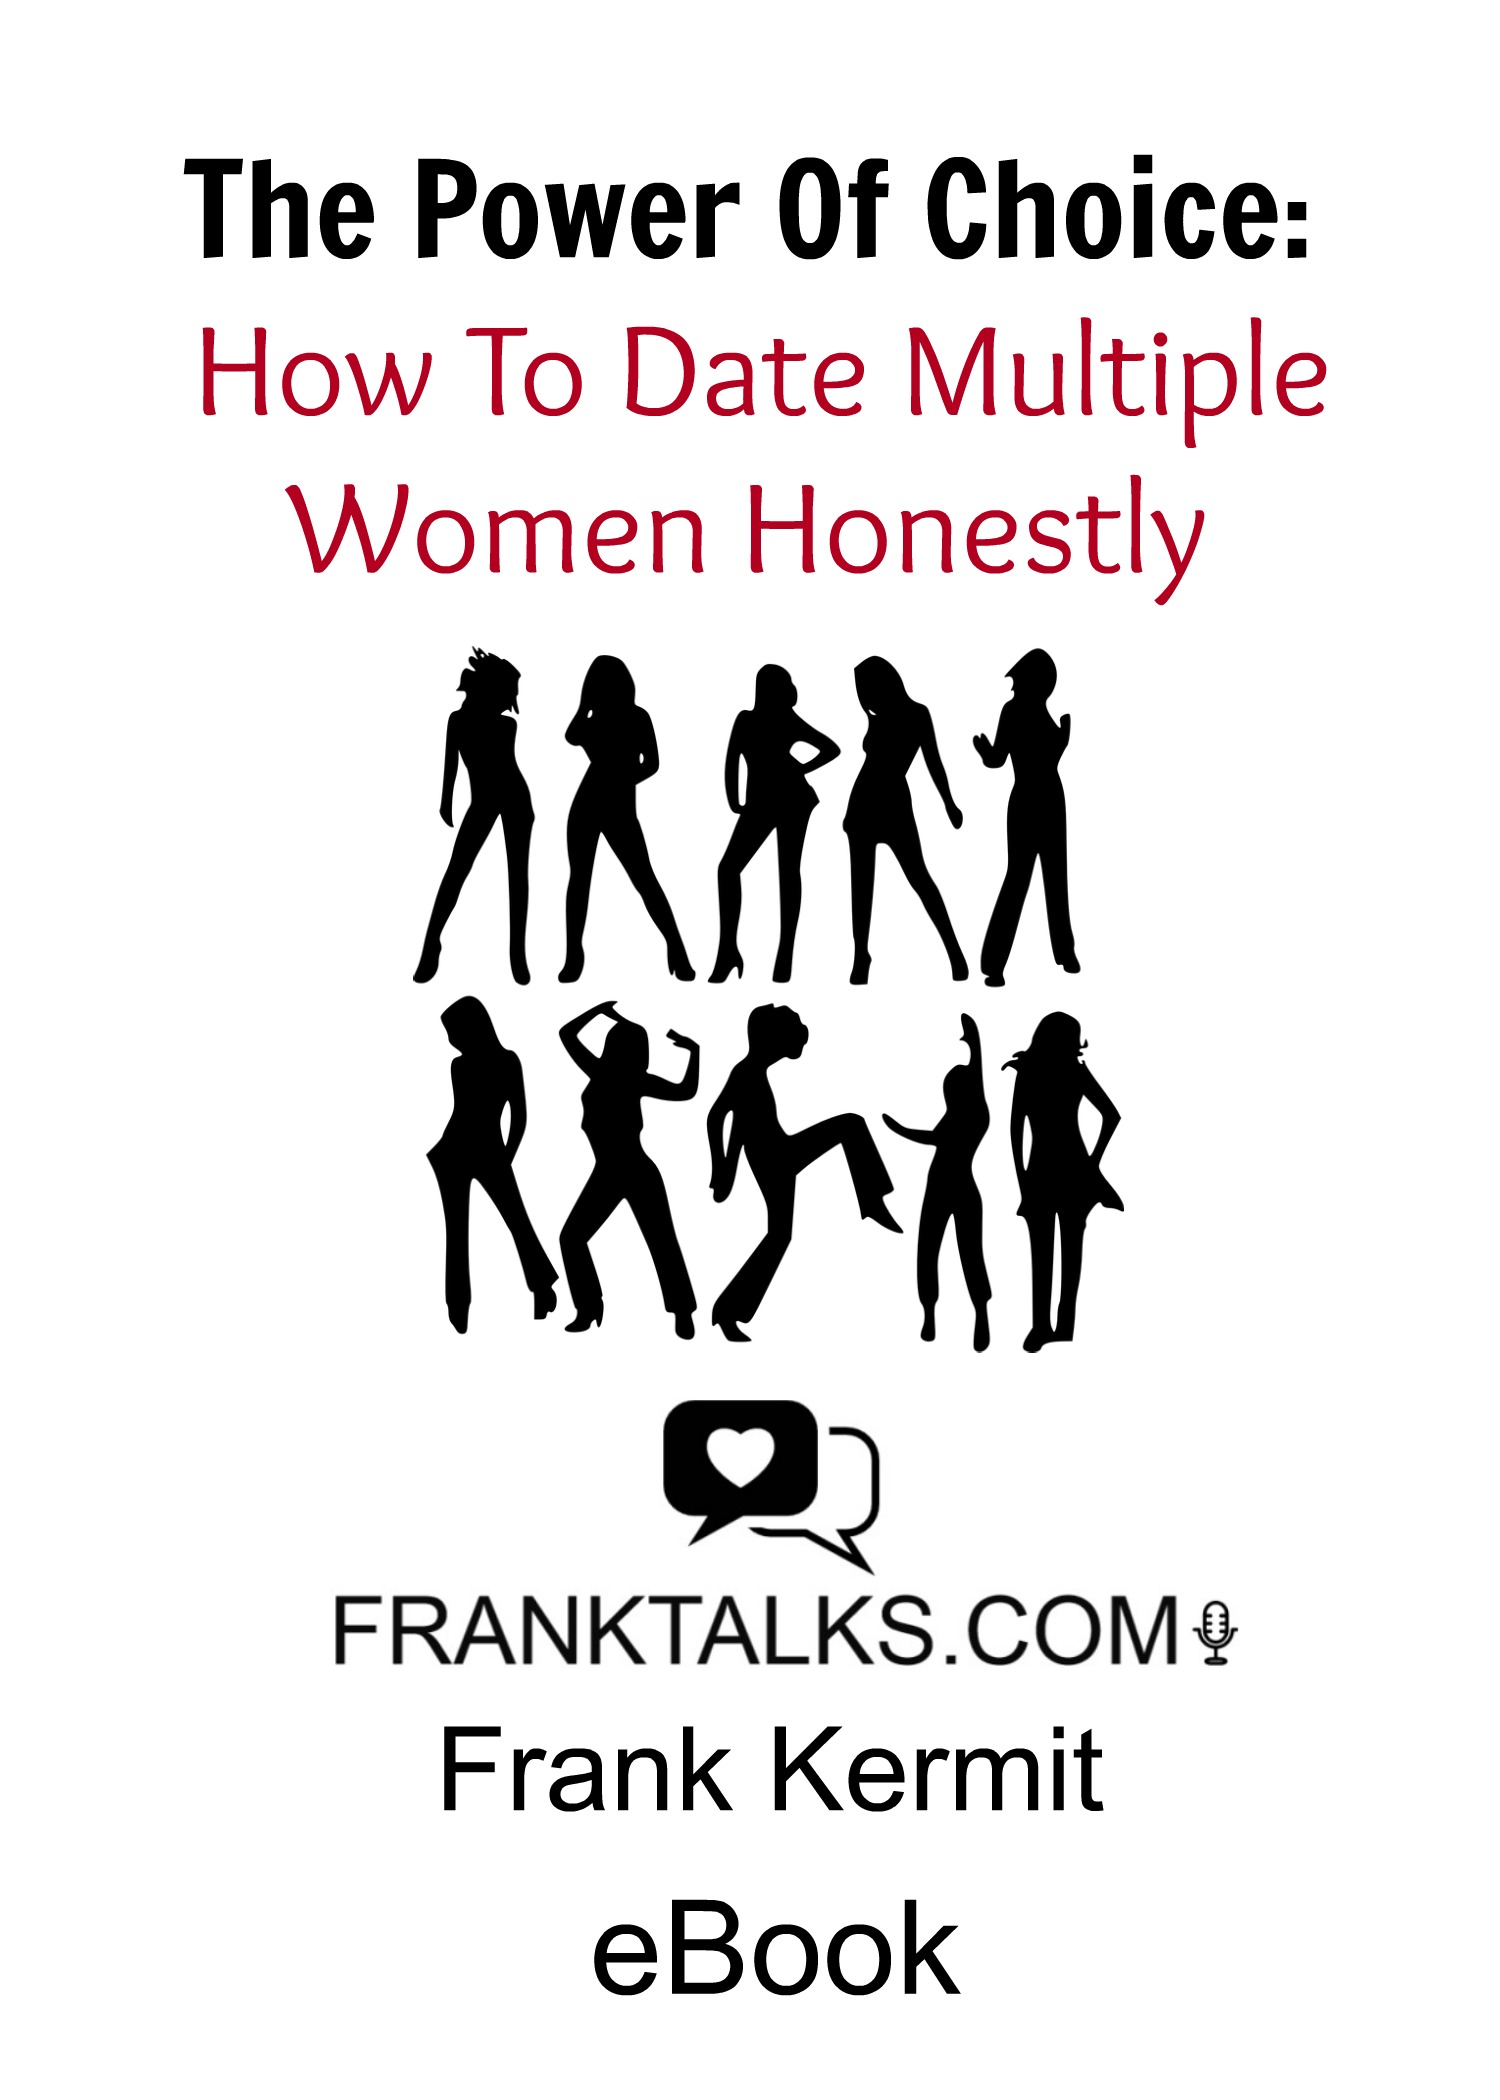 HOW TO DATE MULTIPLE WOMEN HONESTLY EBOOK by Frank Kermit